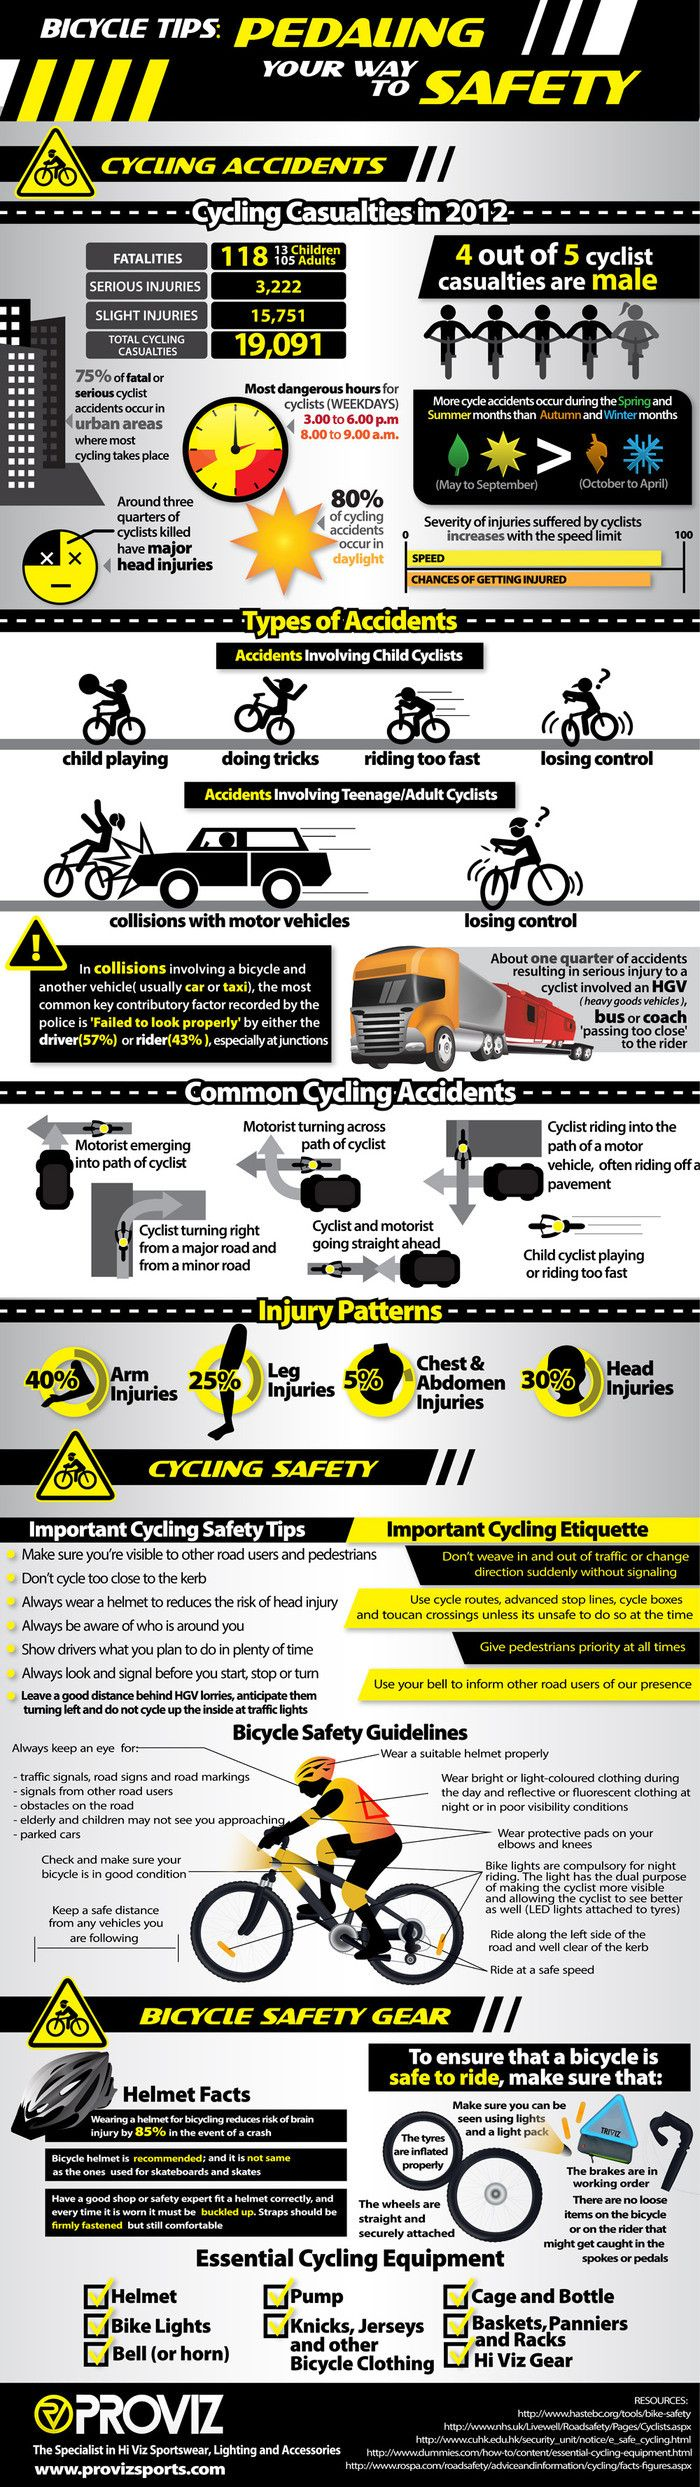 Safety Tips For Cyclists With Images Cycling Safety Cycling